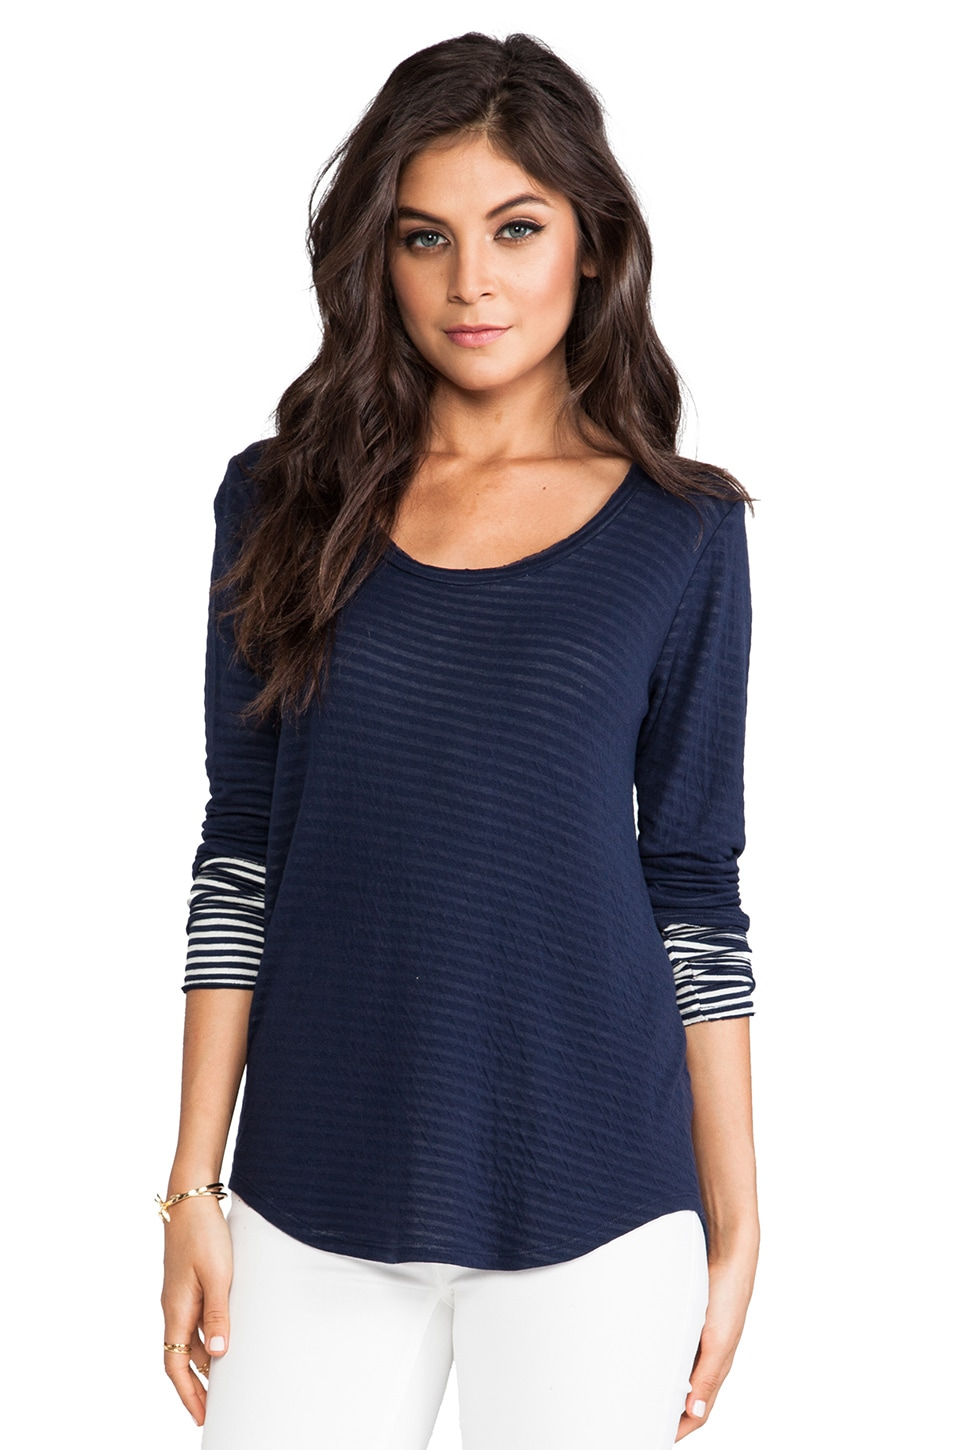 Whetherly Double Jersey Raw Gael Long Sleeve Top in Navy & Creme